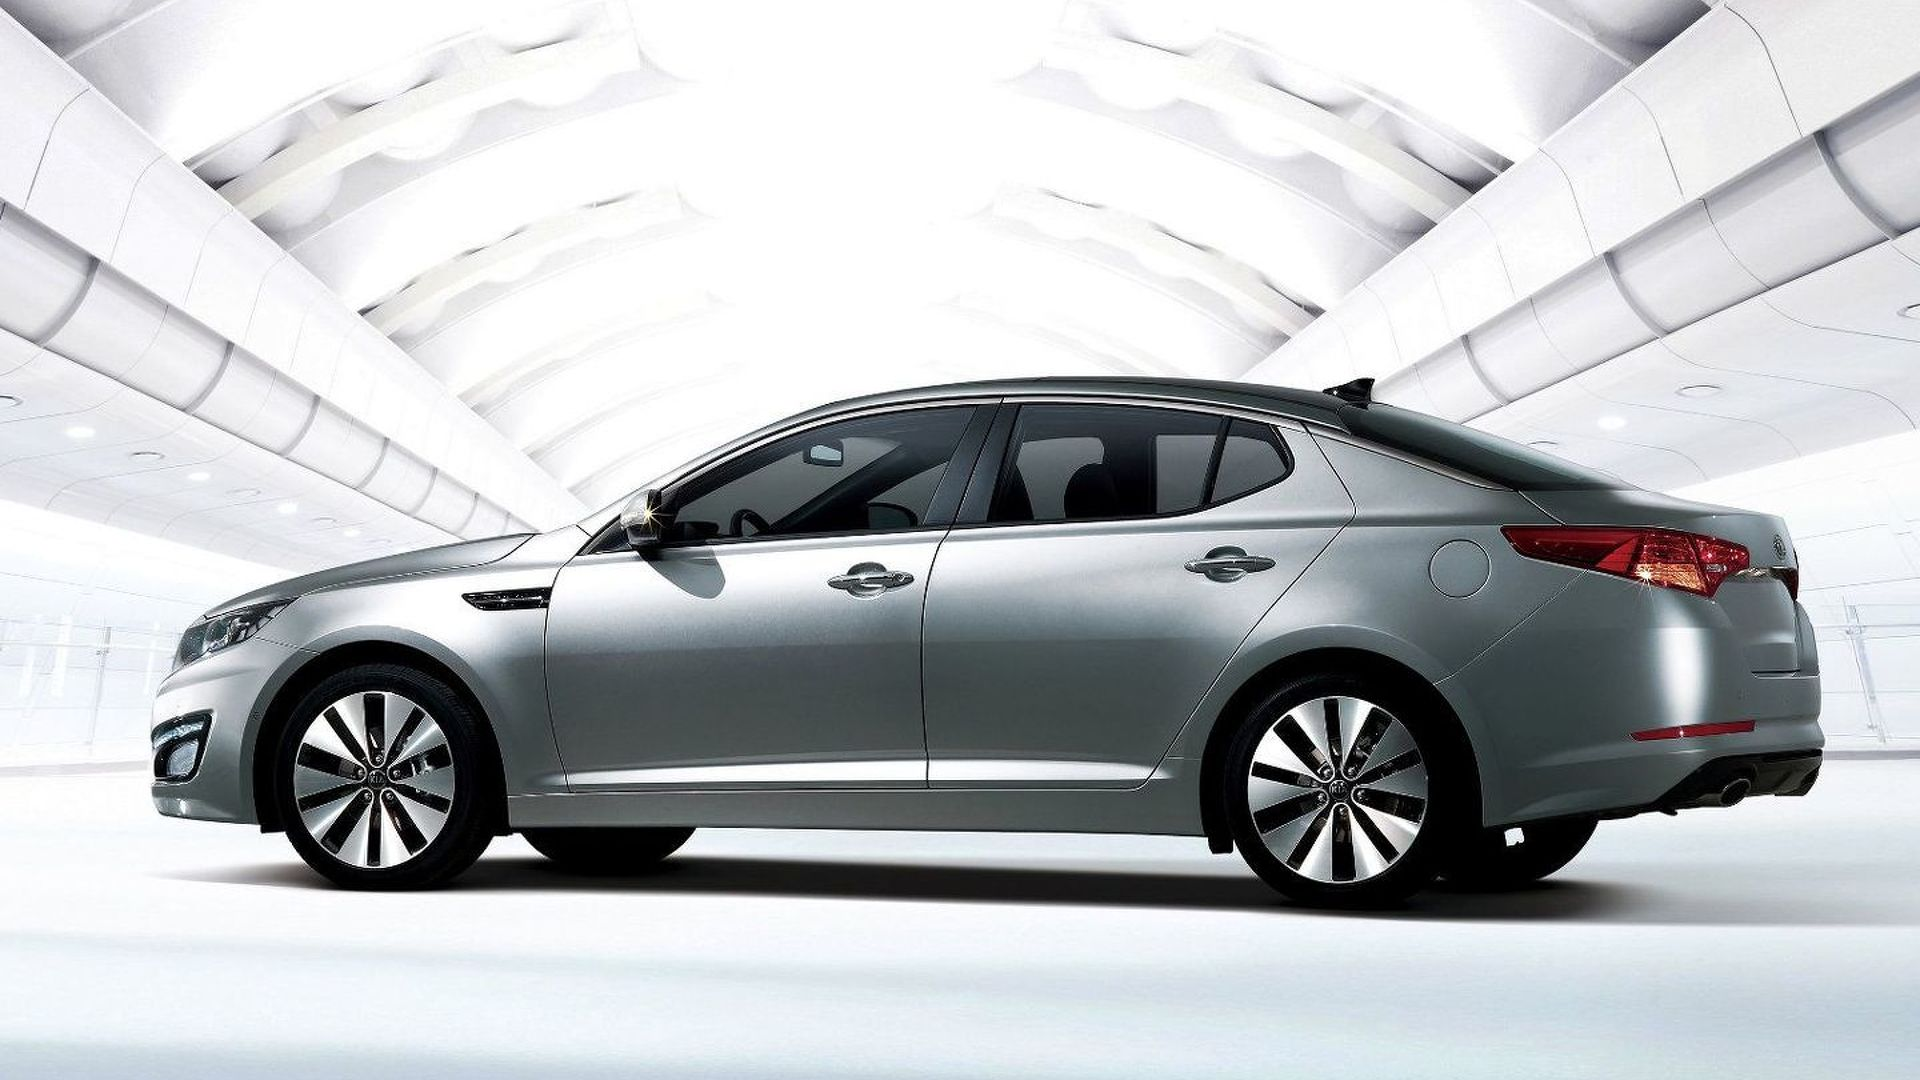 Next Gen 2011 Kia Magentis / Optima First Details Released - Debut in New York